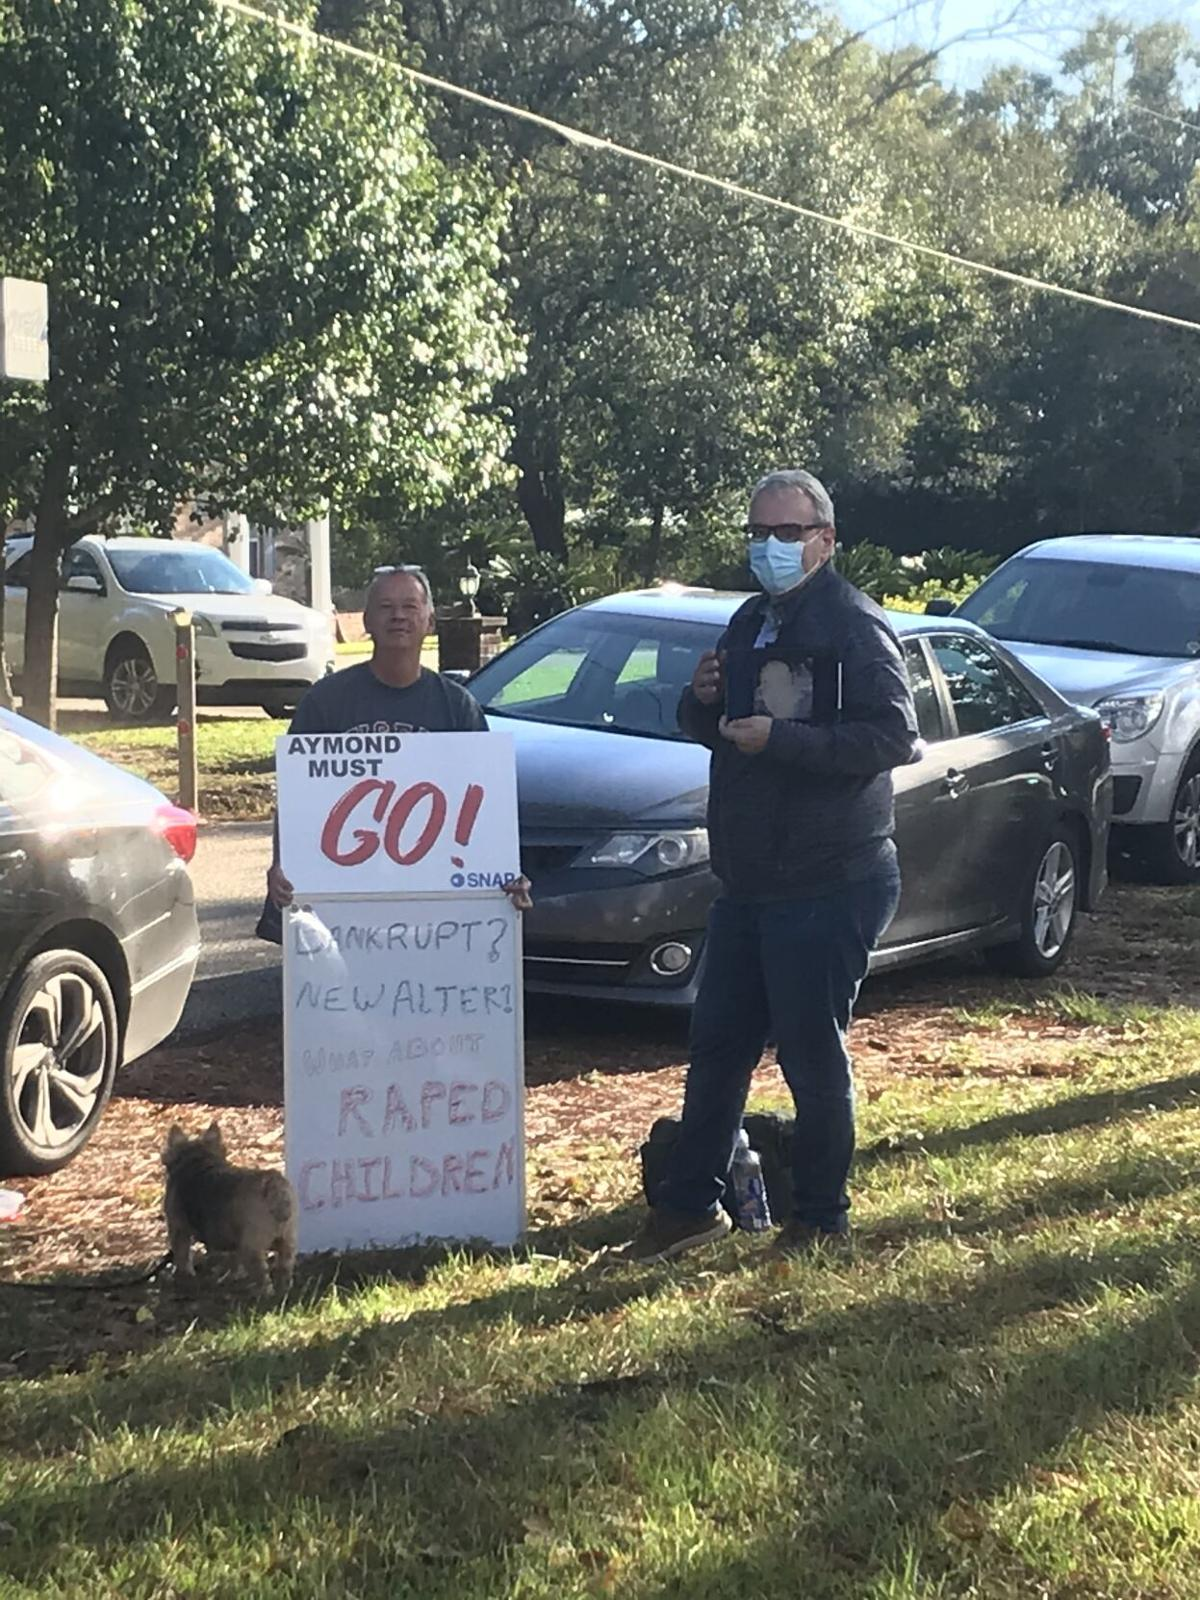 Pearl River church protest